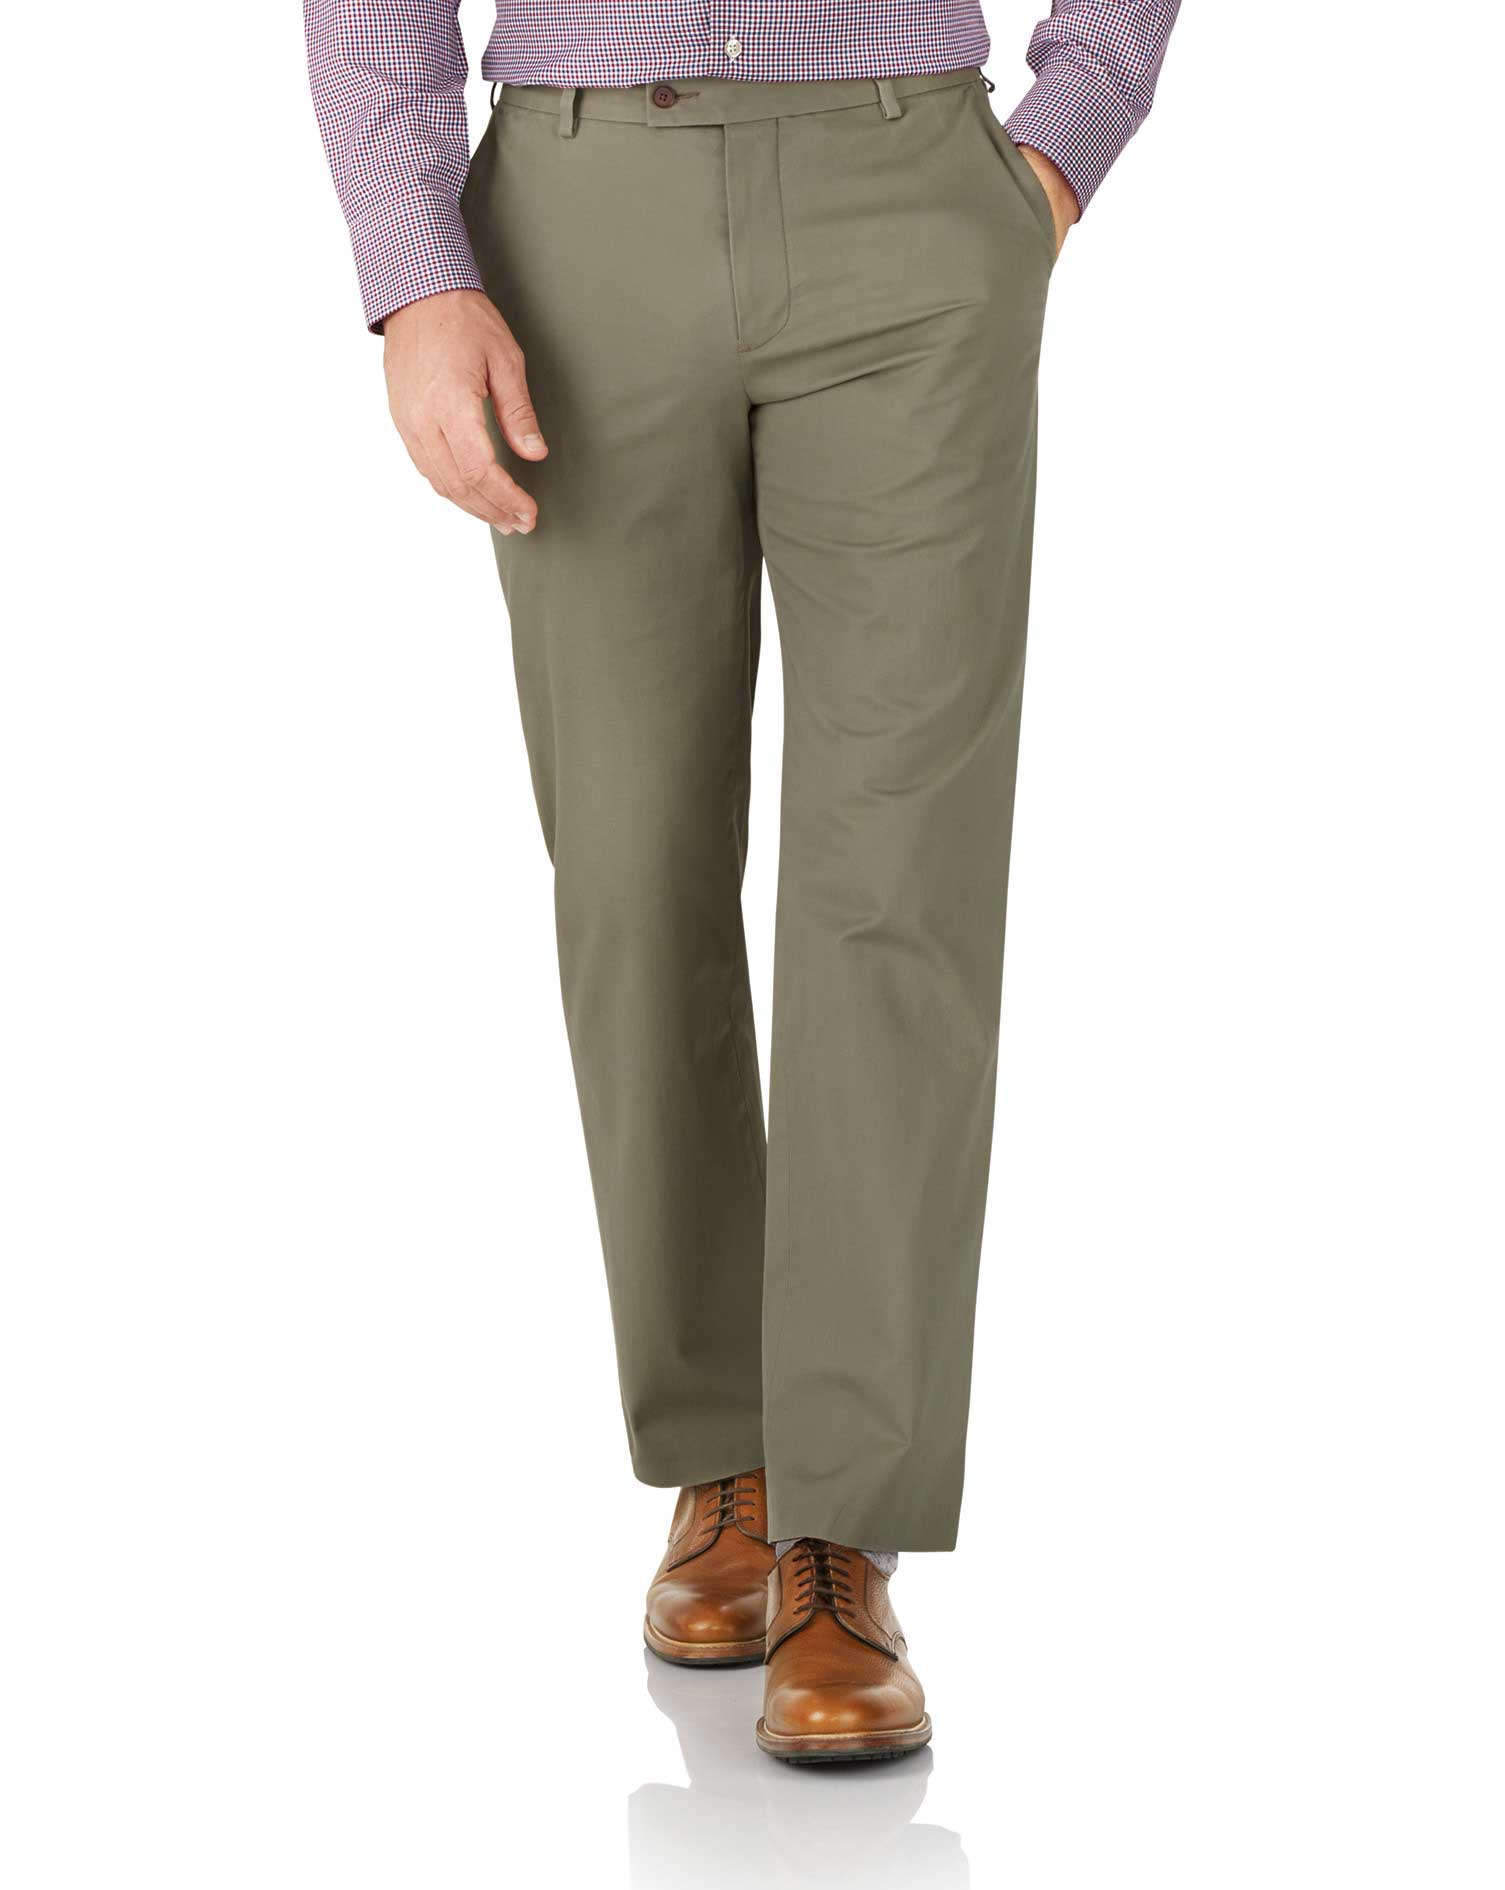 Khaki Classic Fit Stretch Cotton Chino Trousers Size W42 L34 by Charles Tyrwhitt